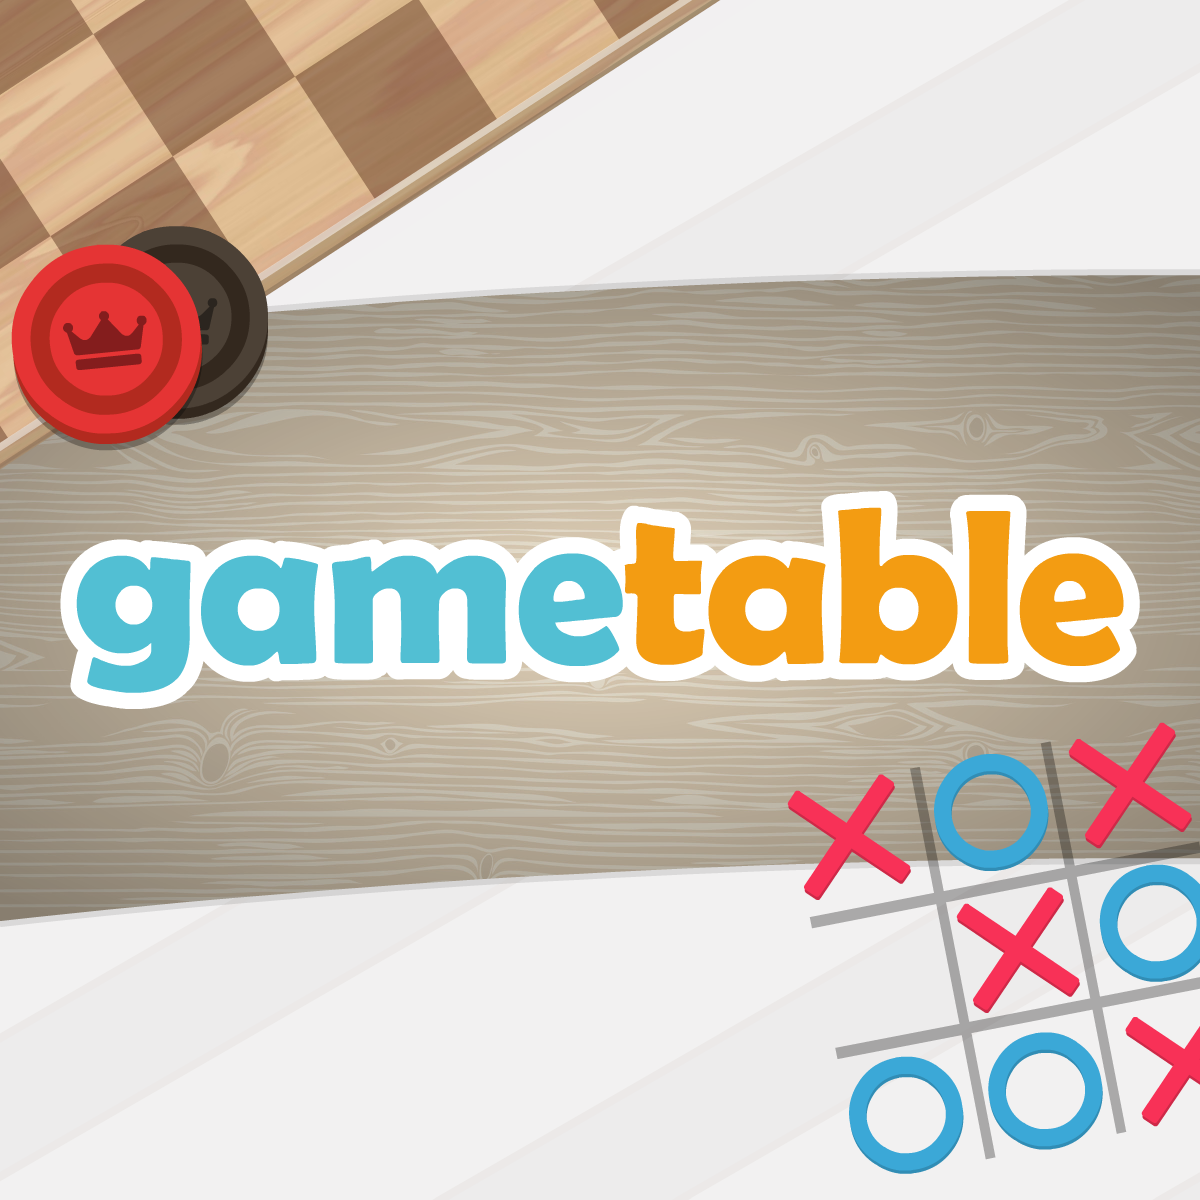 gametable